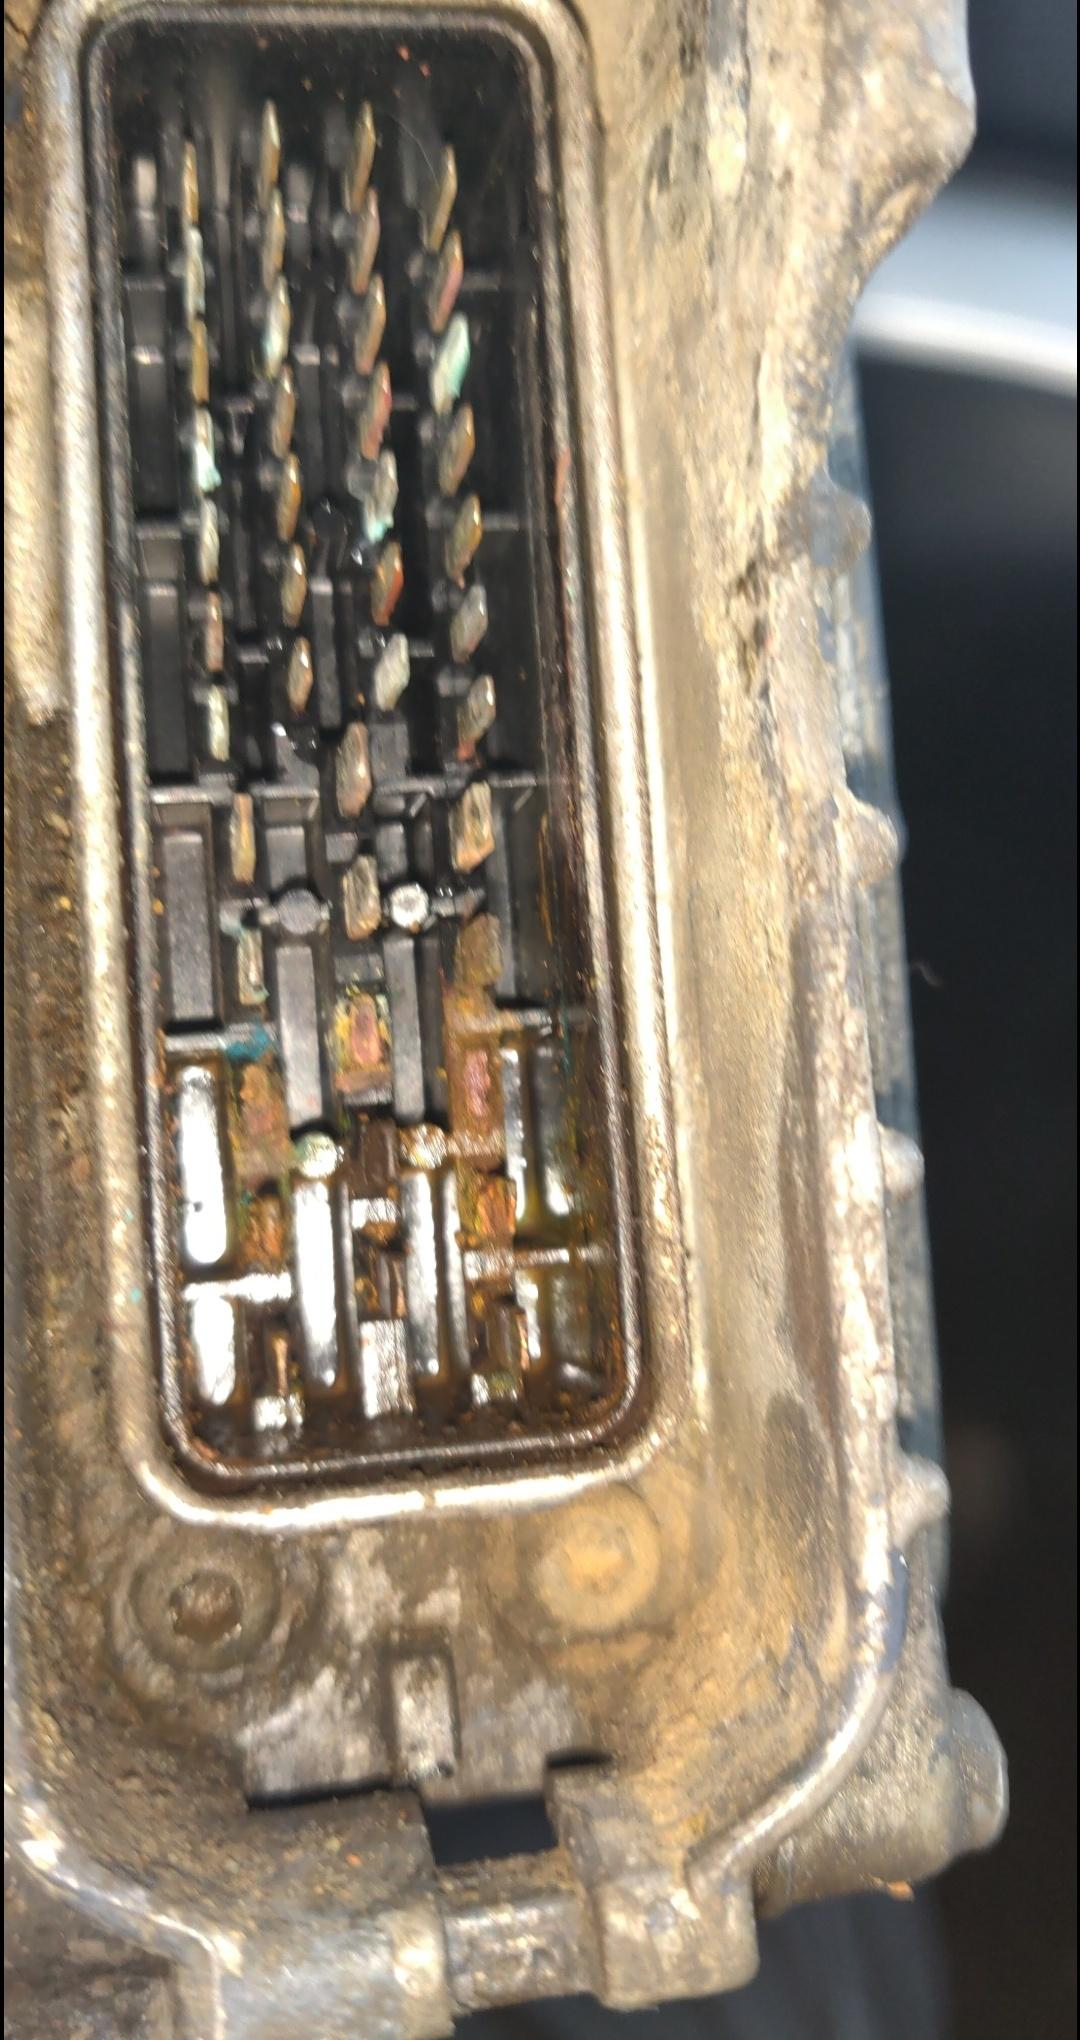 No throttle  Please help  - Electrical, Electronics and